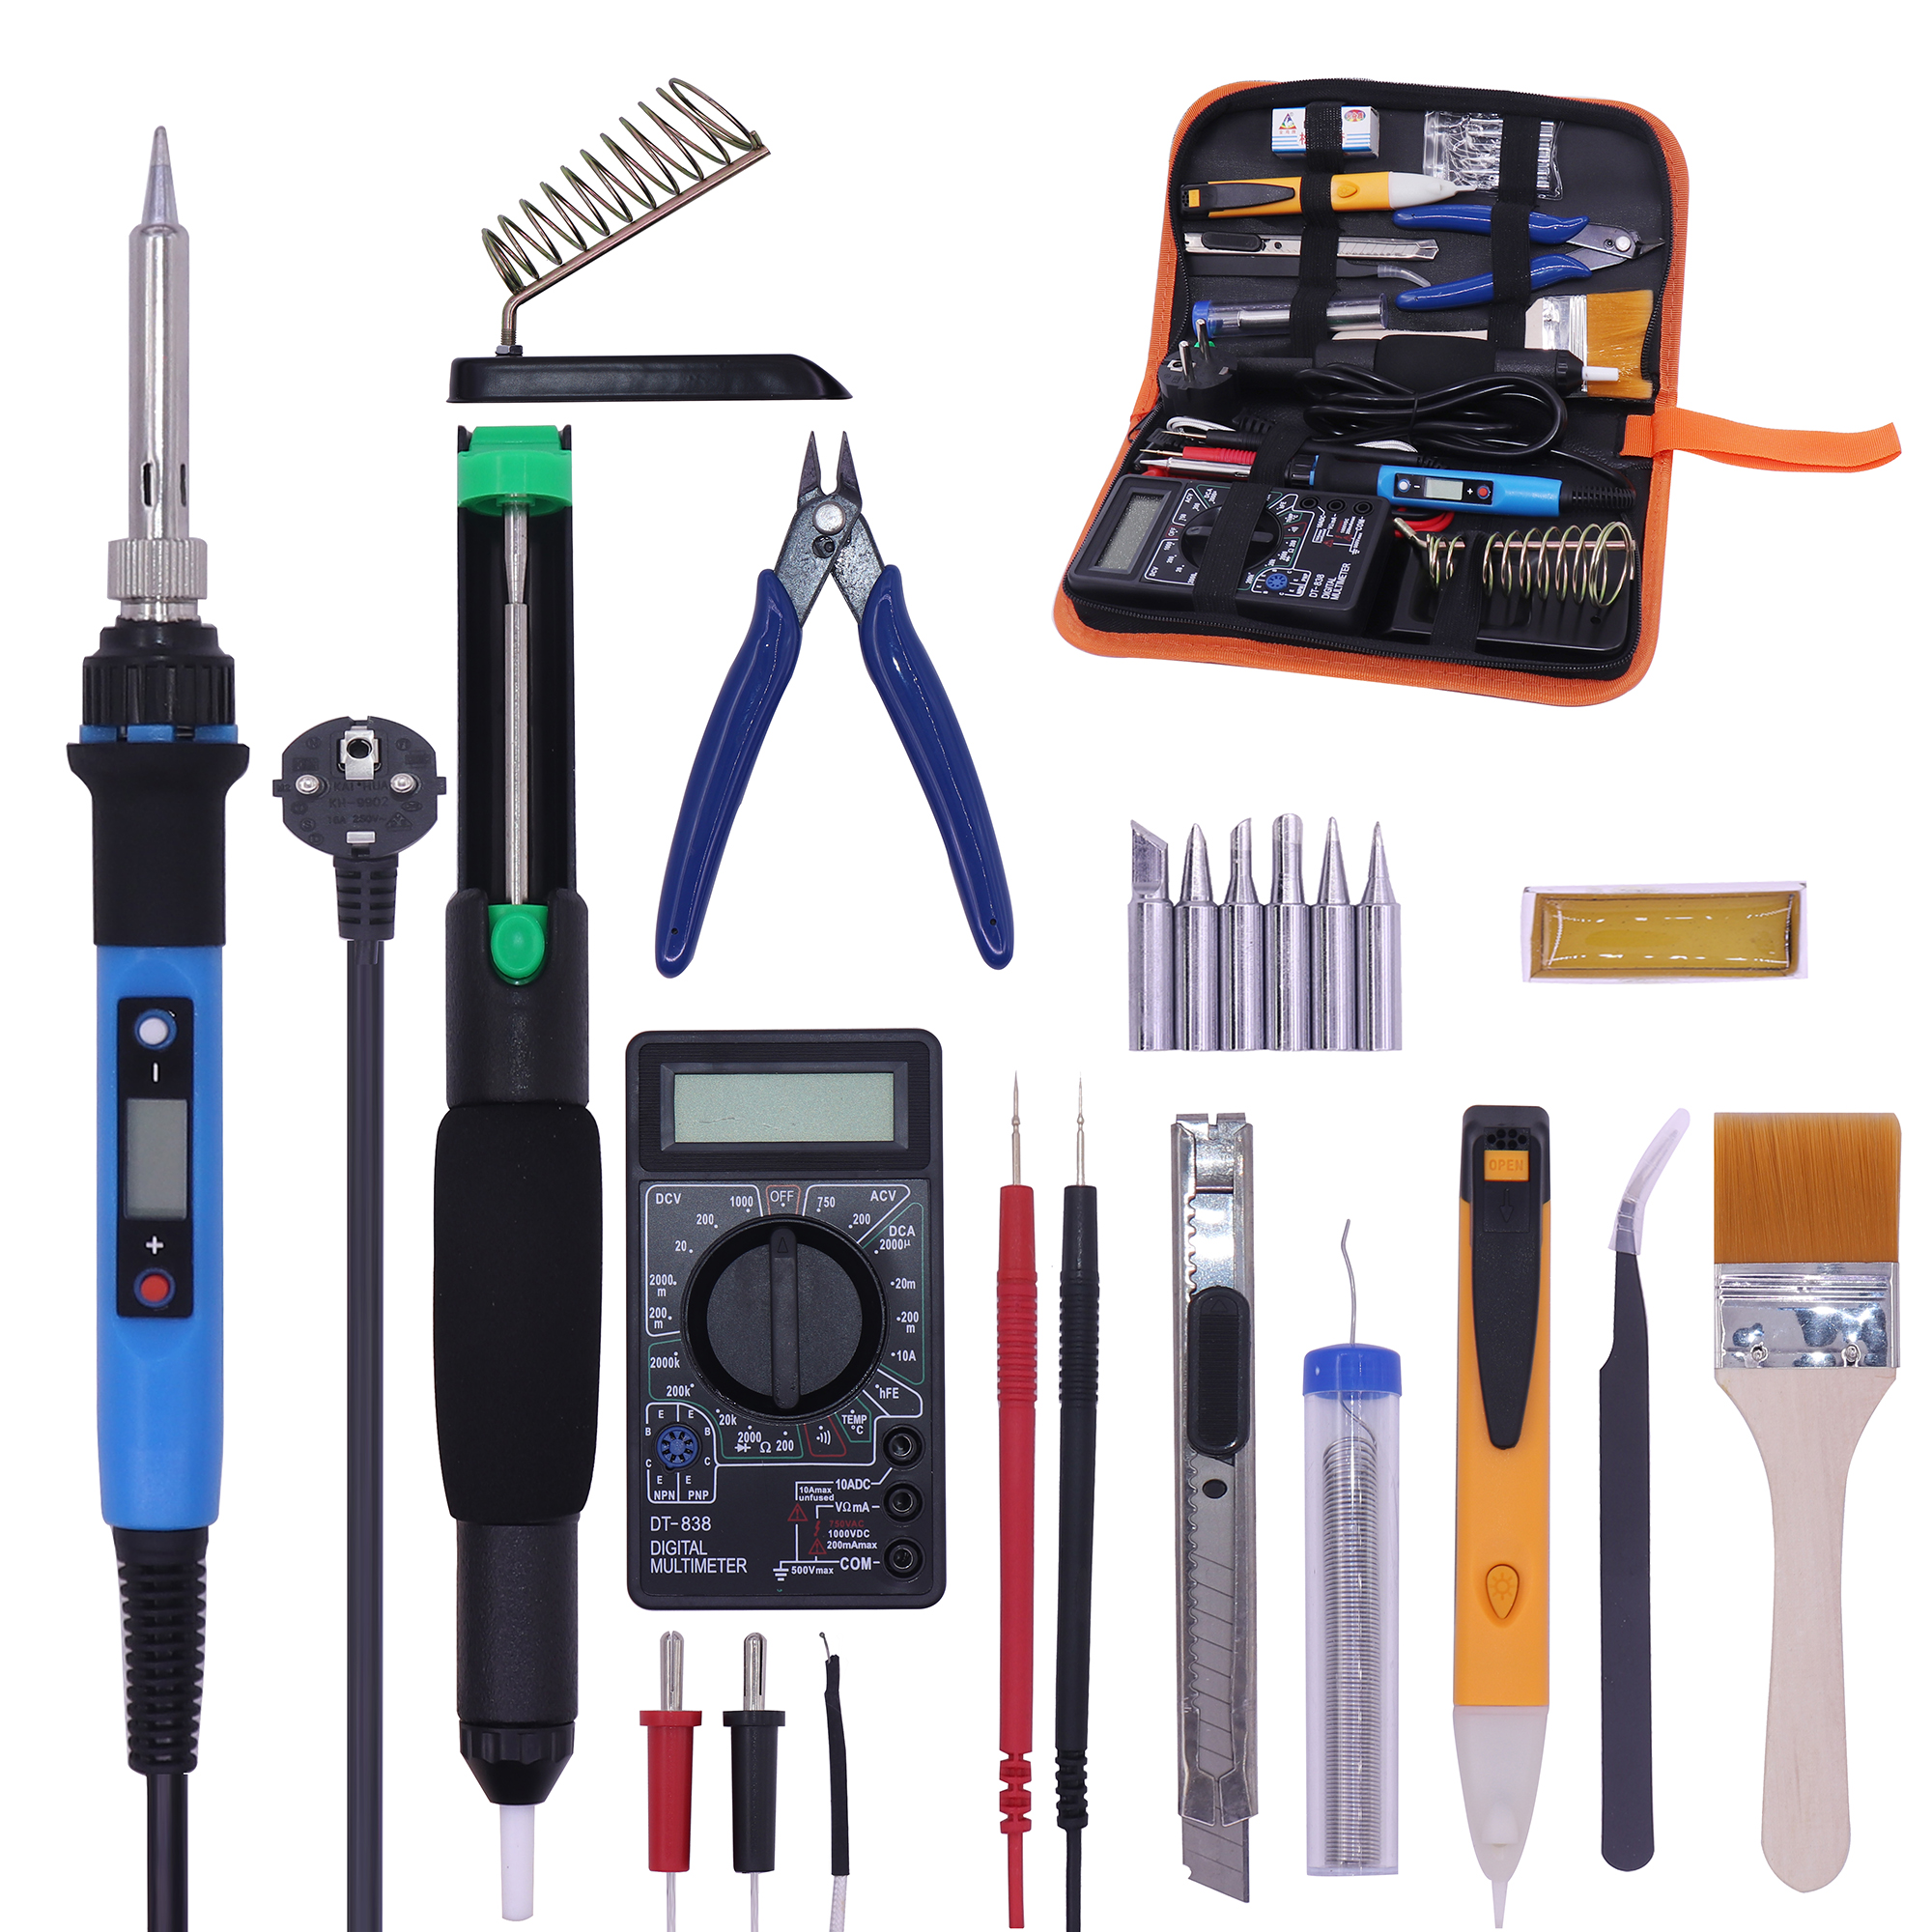 80W Electric Soldering Iron Kit Adjustable Temperature Multimeter Welding Tool Desoldering Pump Tin Wire Pliers Welding